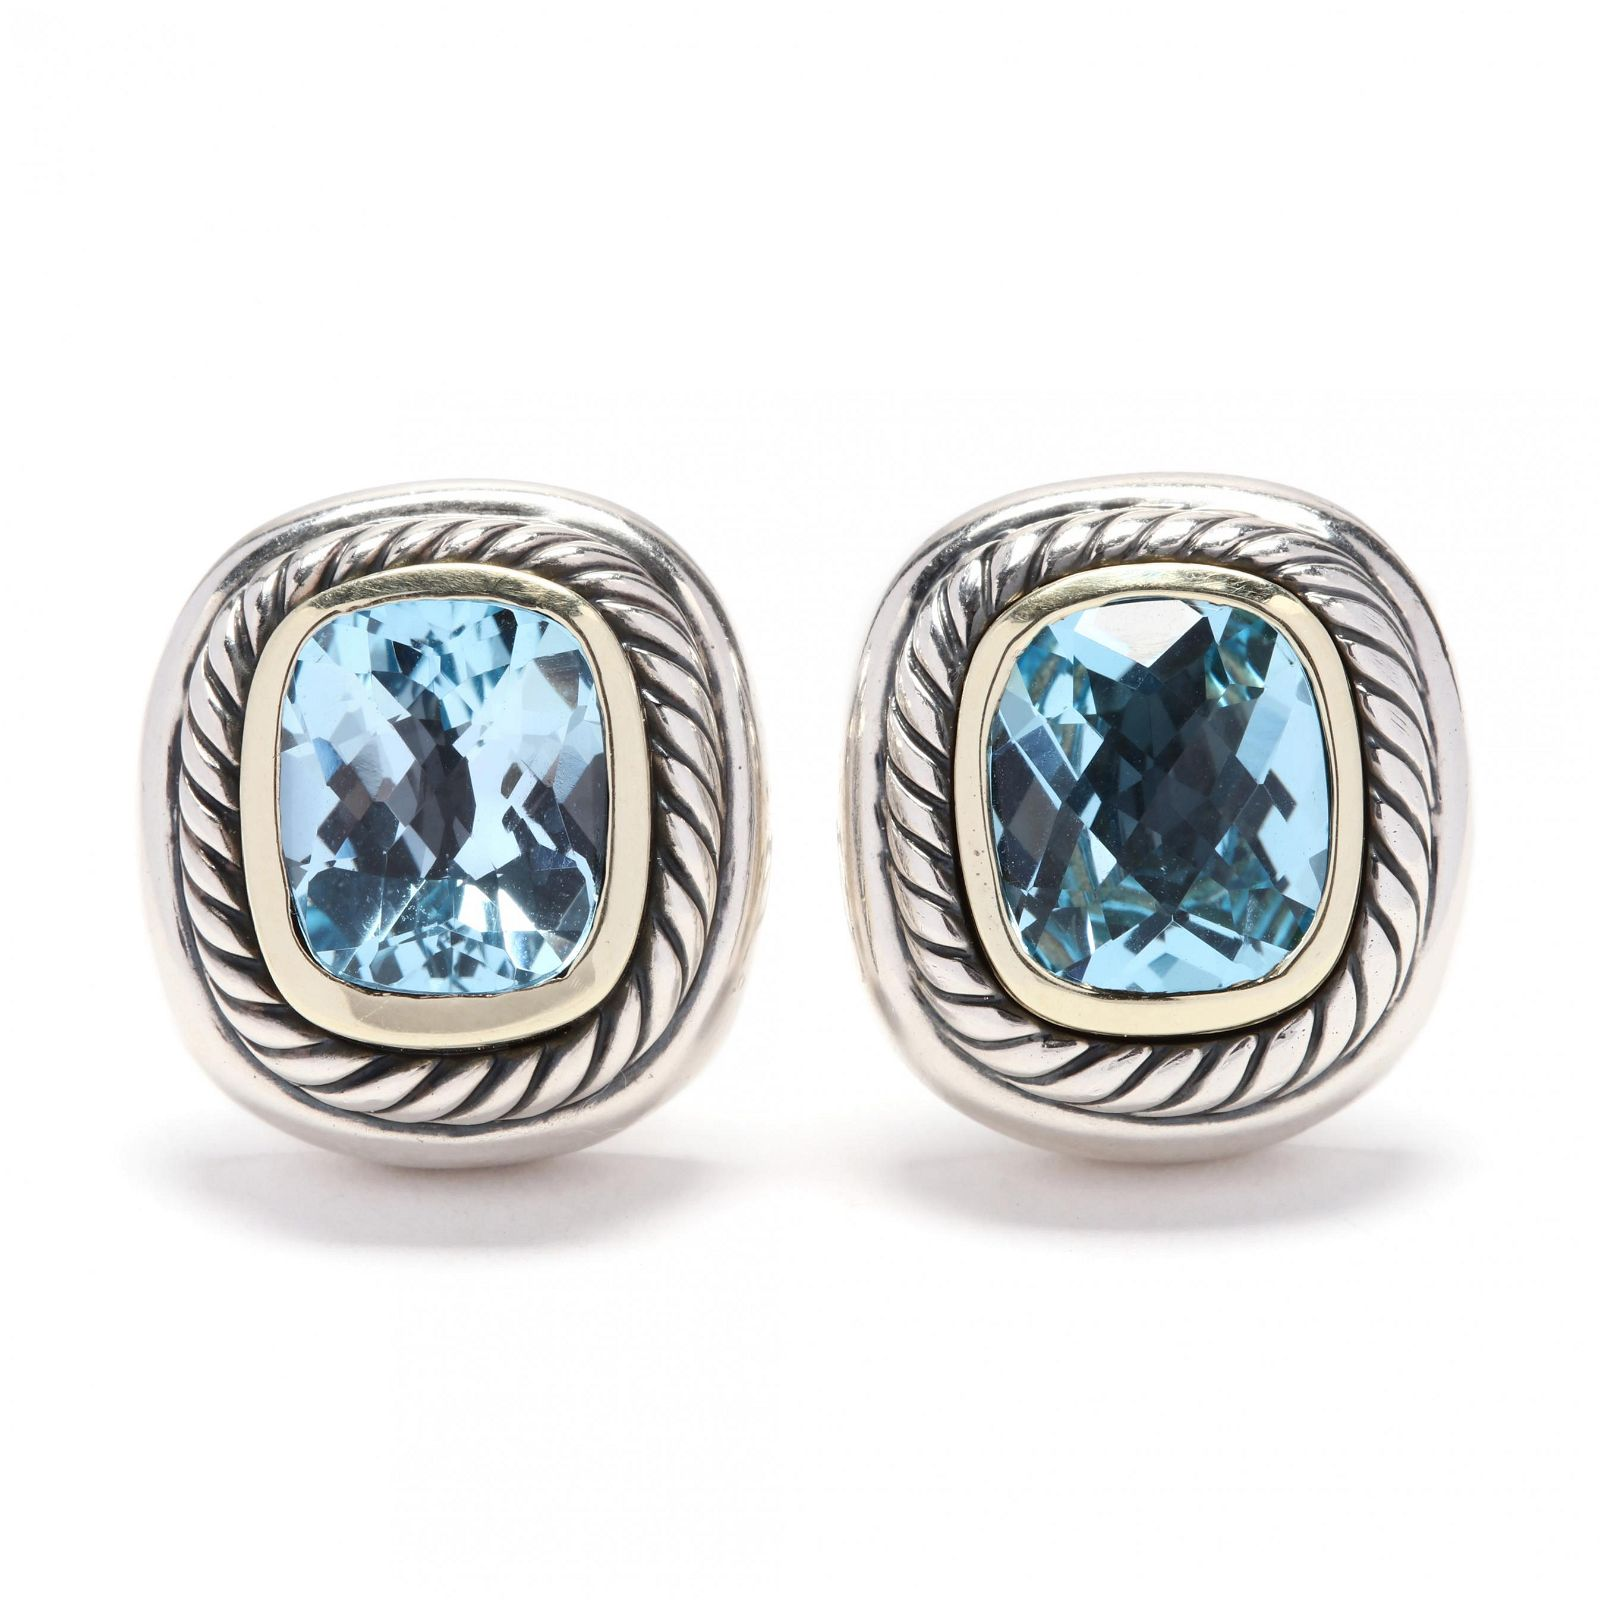 Sterling Silver, 14KT Gold, and Topza Earrings, David